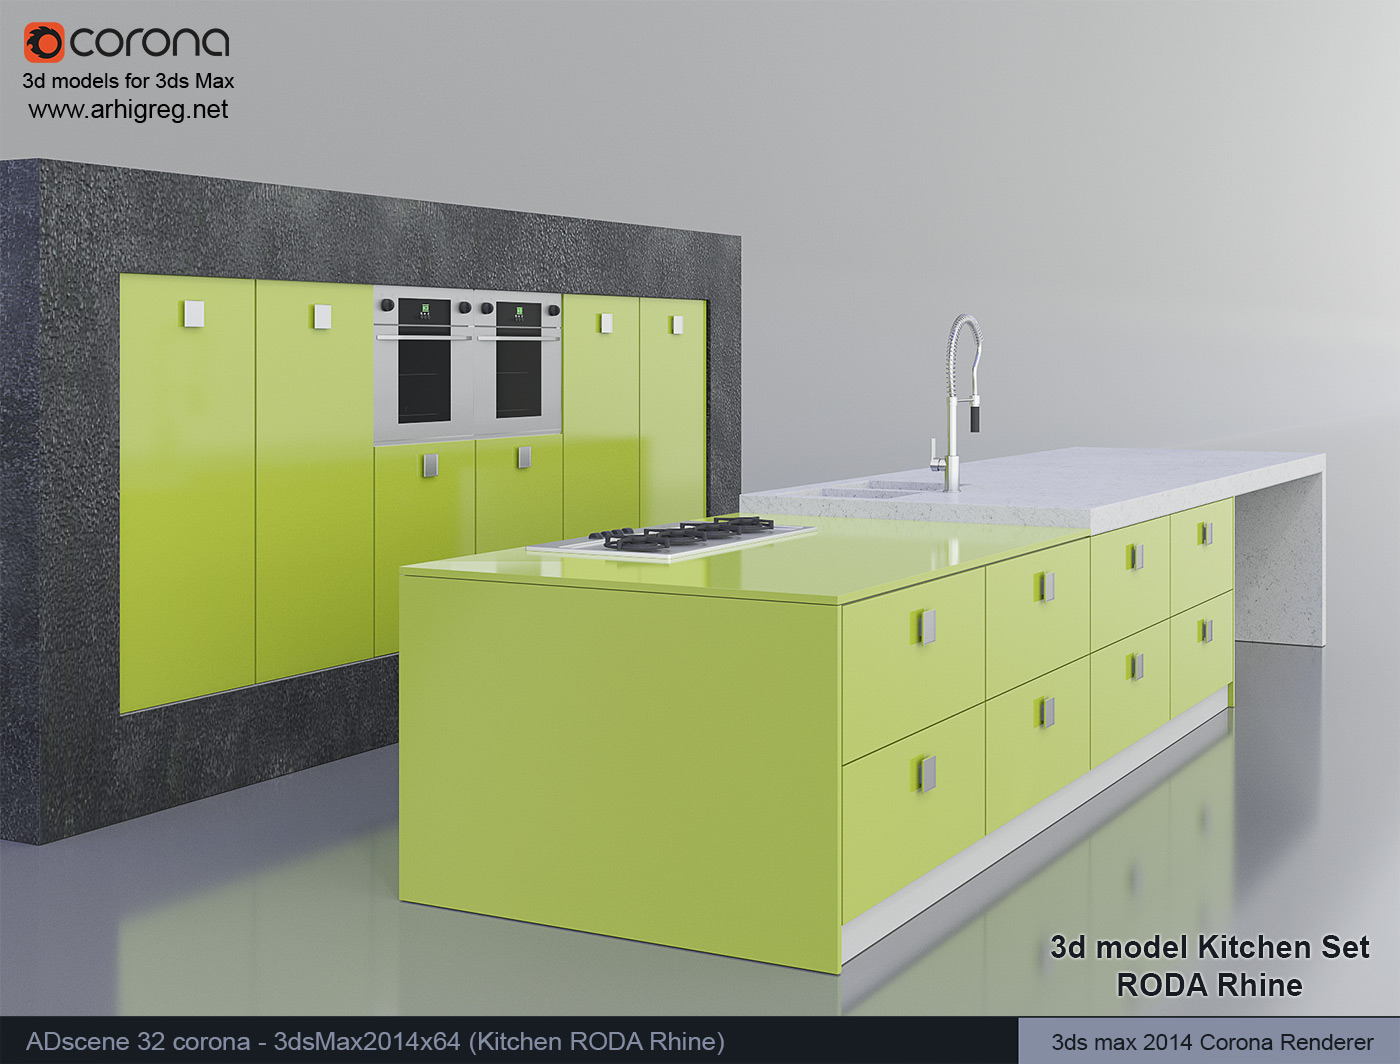 3d model kitchen set roda rhine for Model kitchen